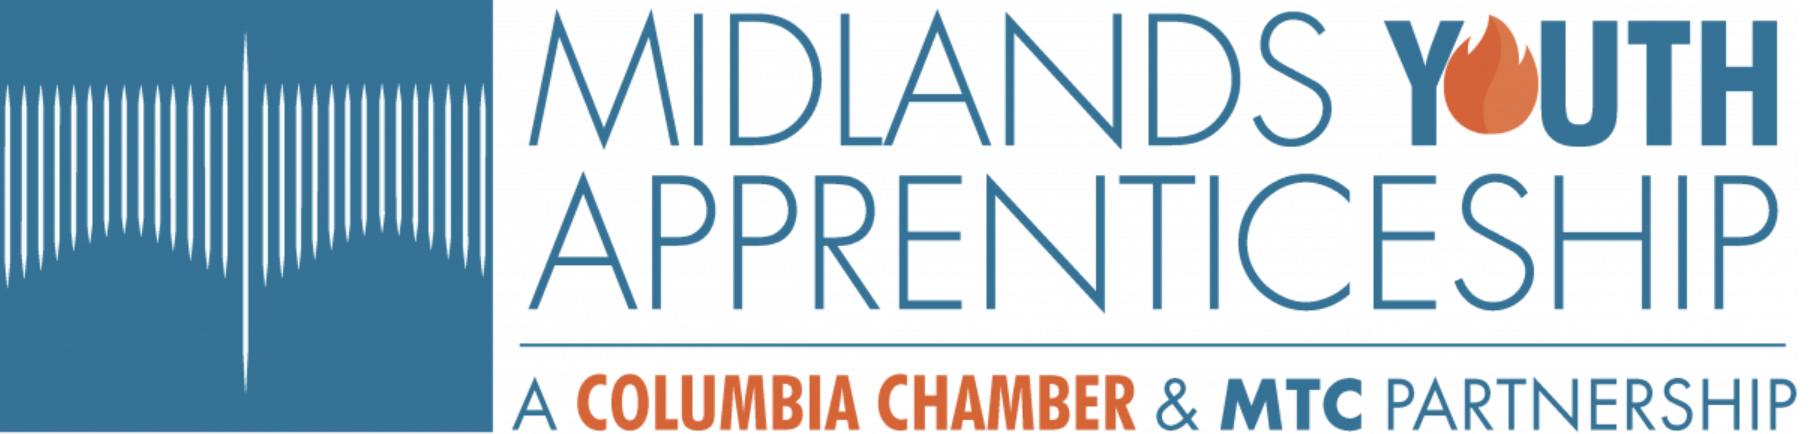 Midlands Youth Apprenticeship by Columbia Chamber and MTC